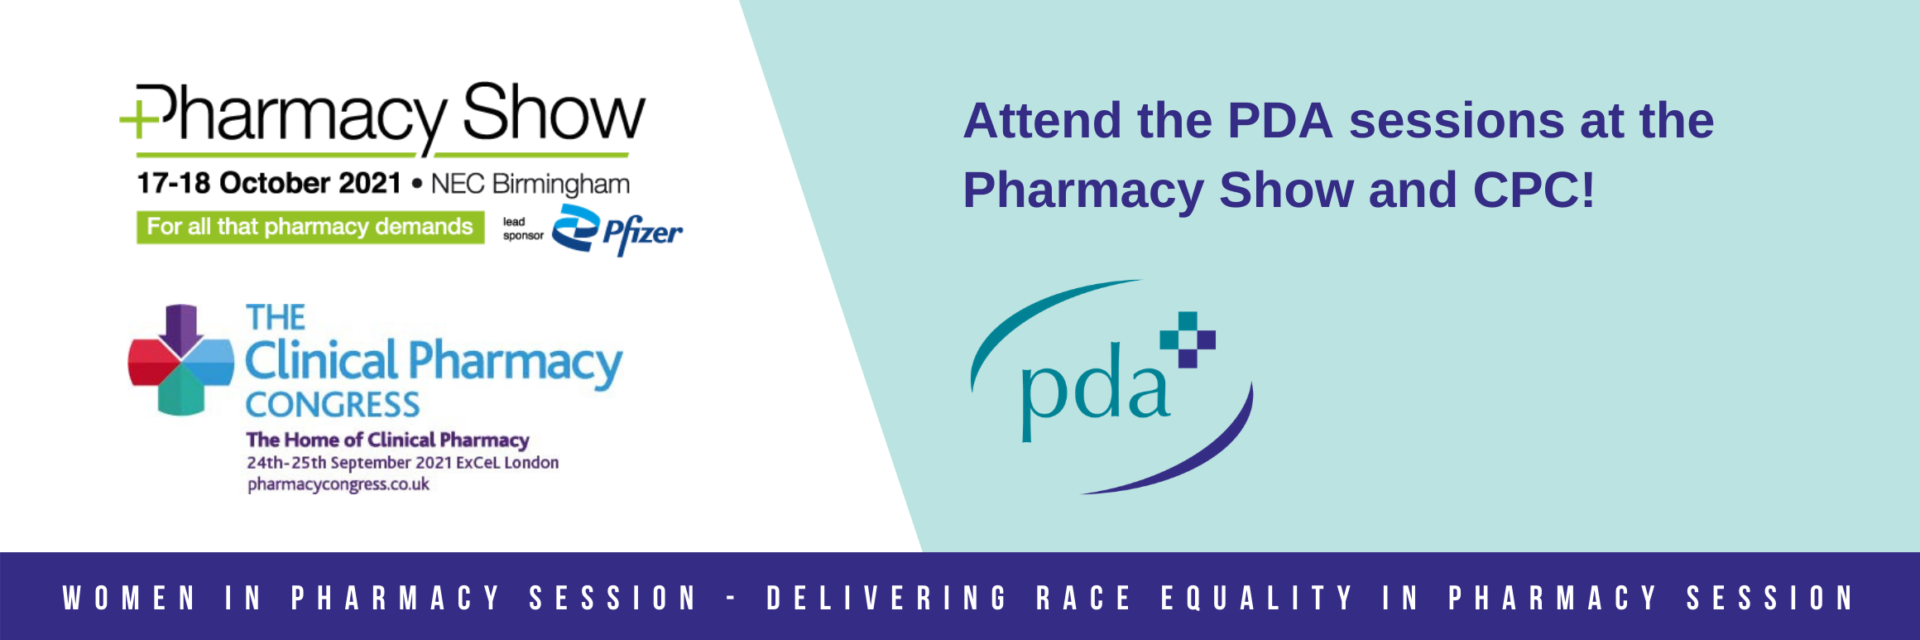 The Pharmacy Show: 17 – 18 October 2021